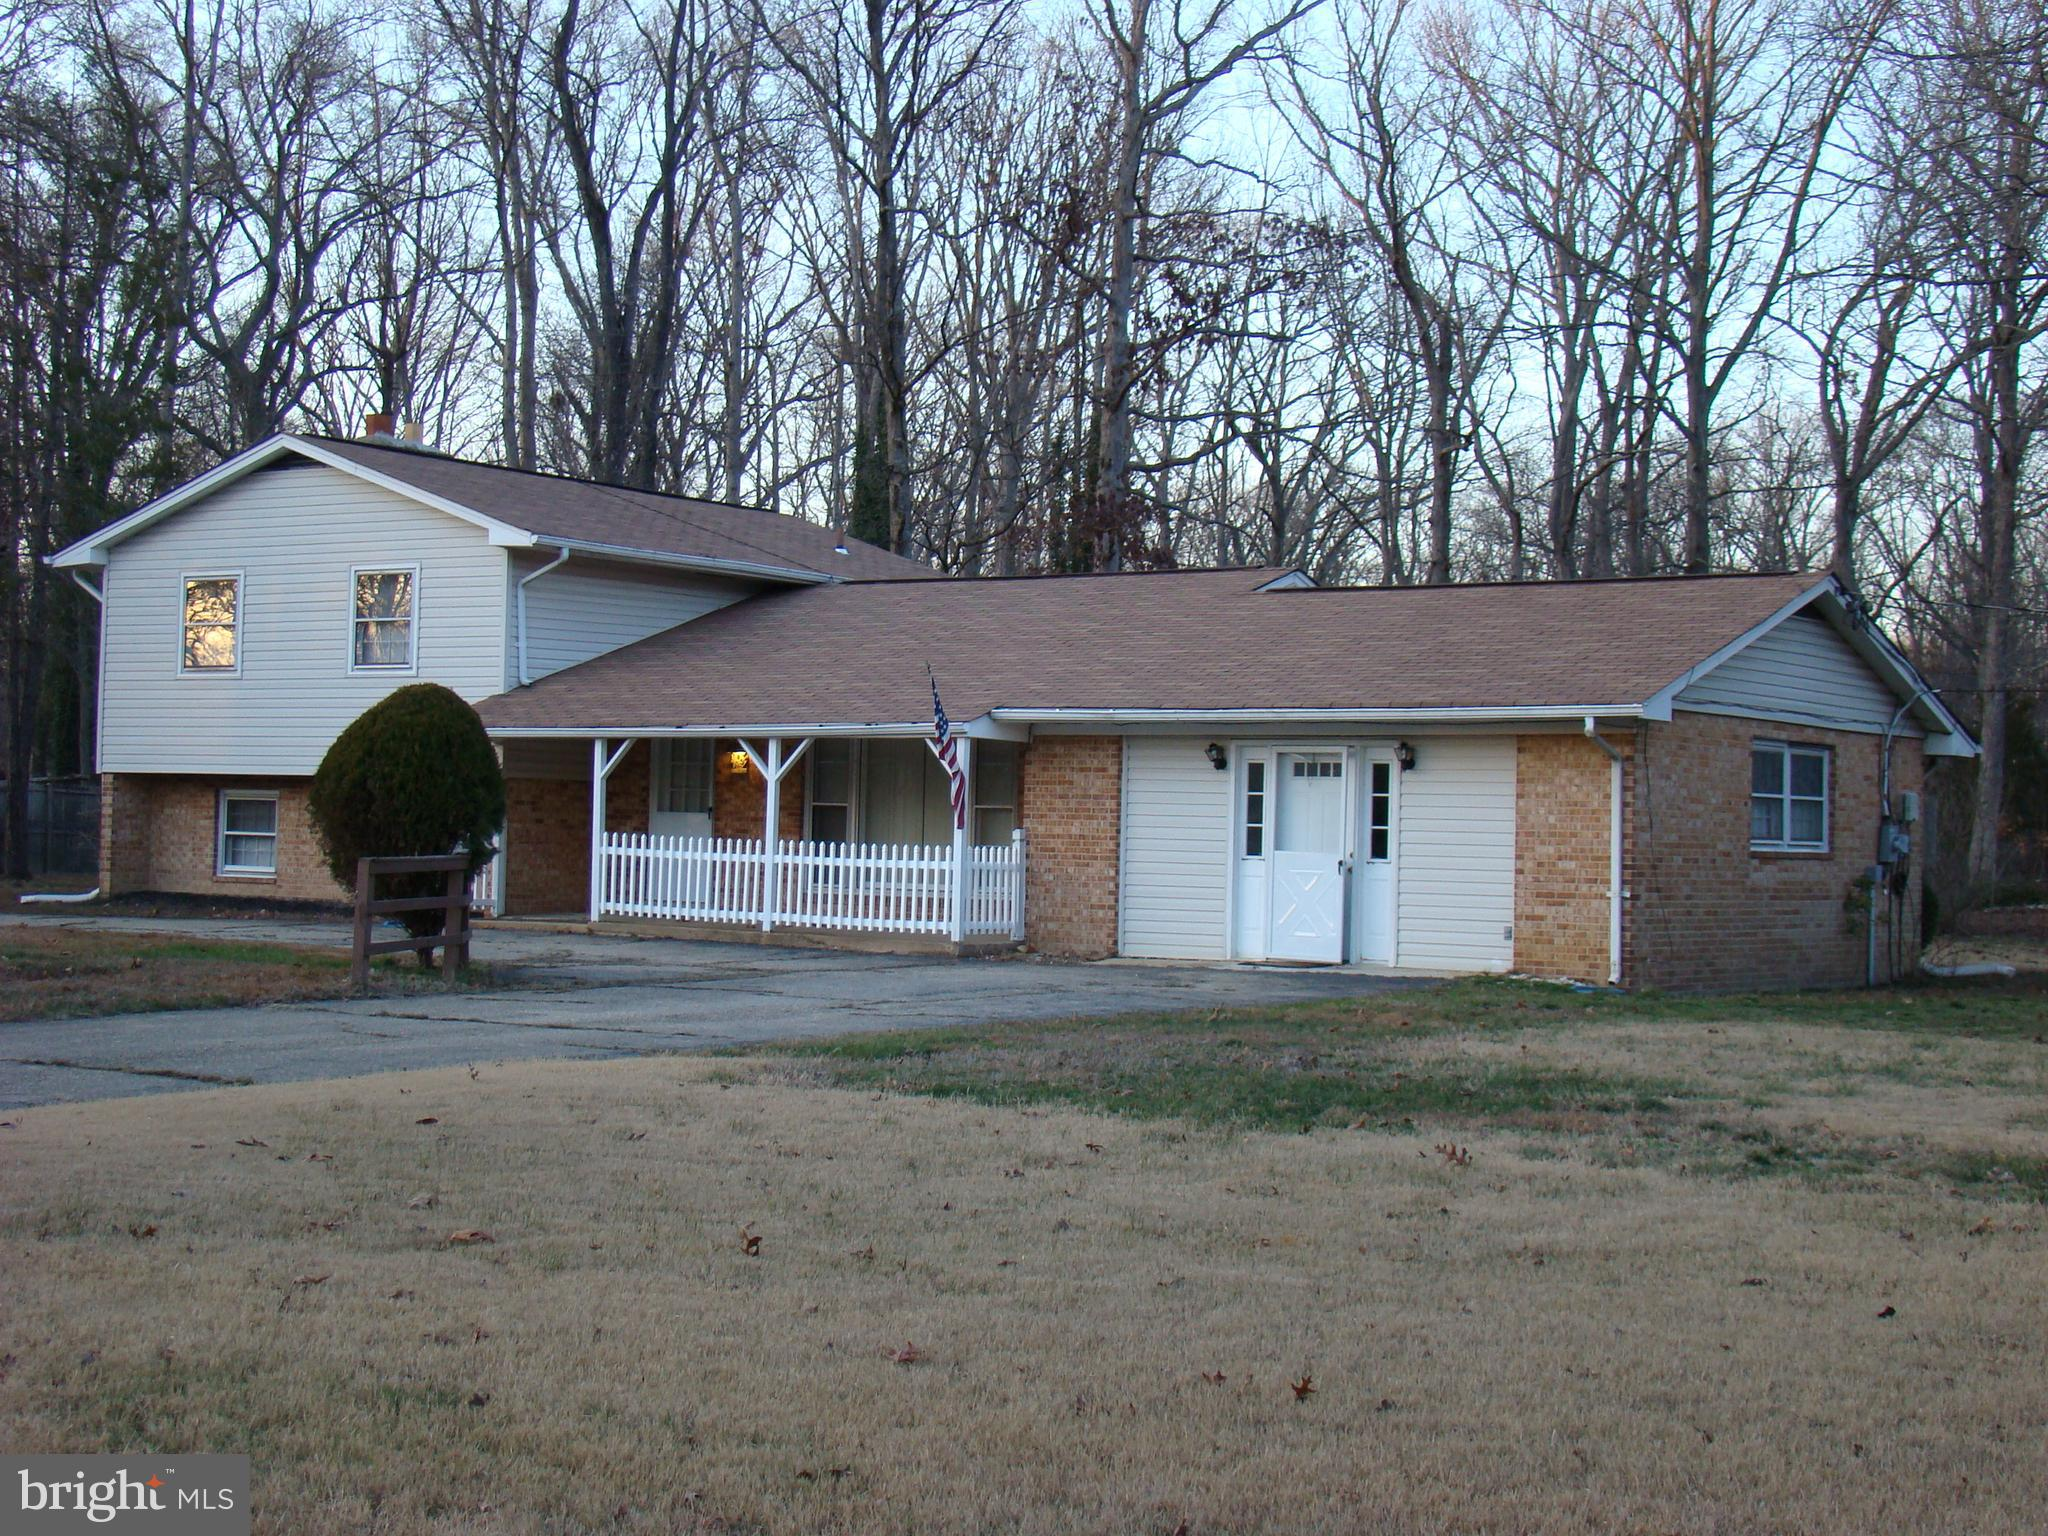 Nice 4BR 2B home on 1 acre n county setting. Main level BIG BRm POSSIBLE In-law suite w additional 5